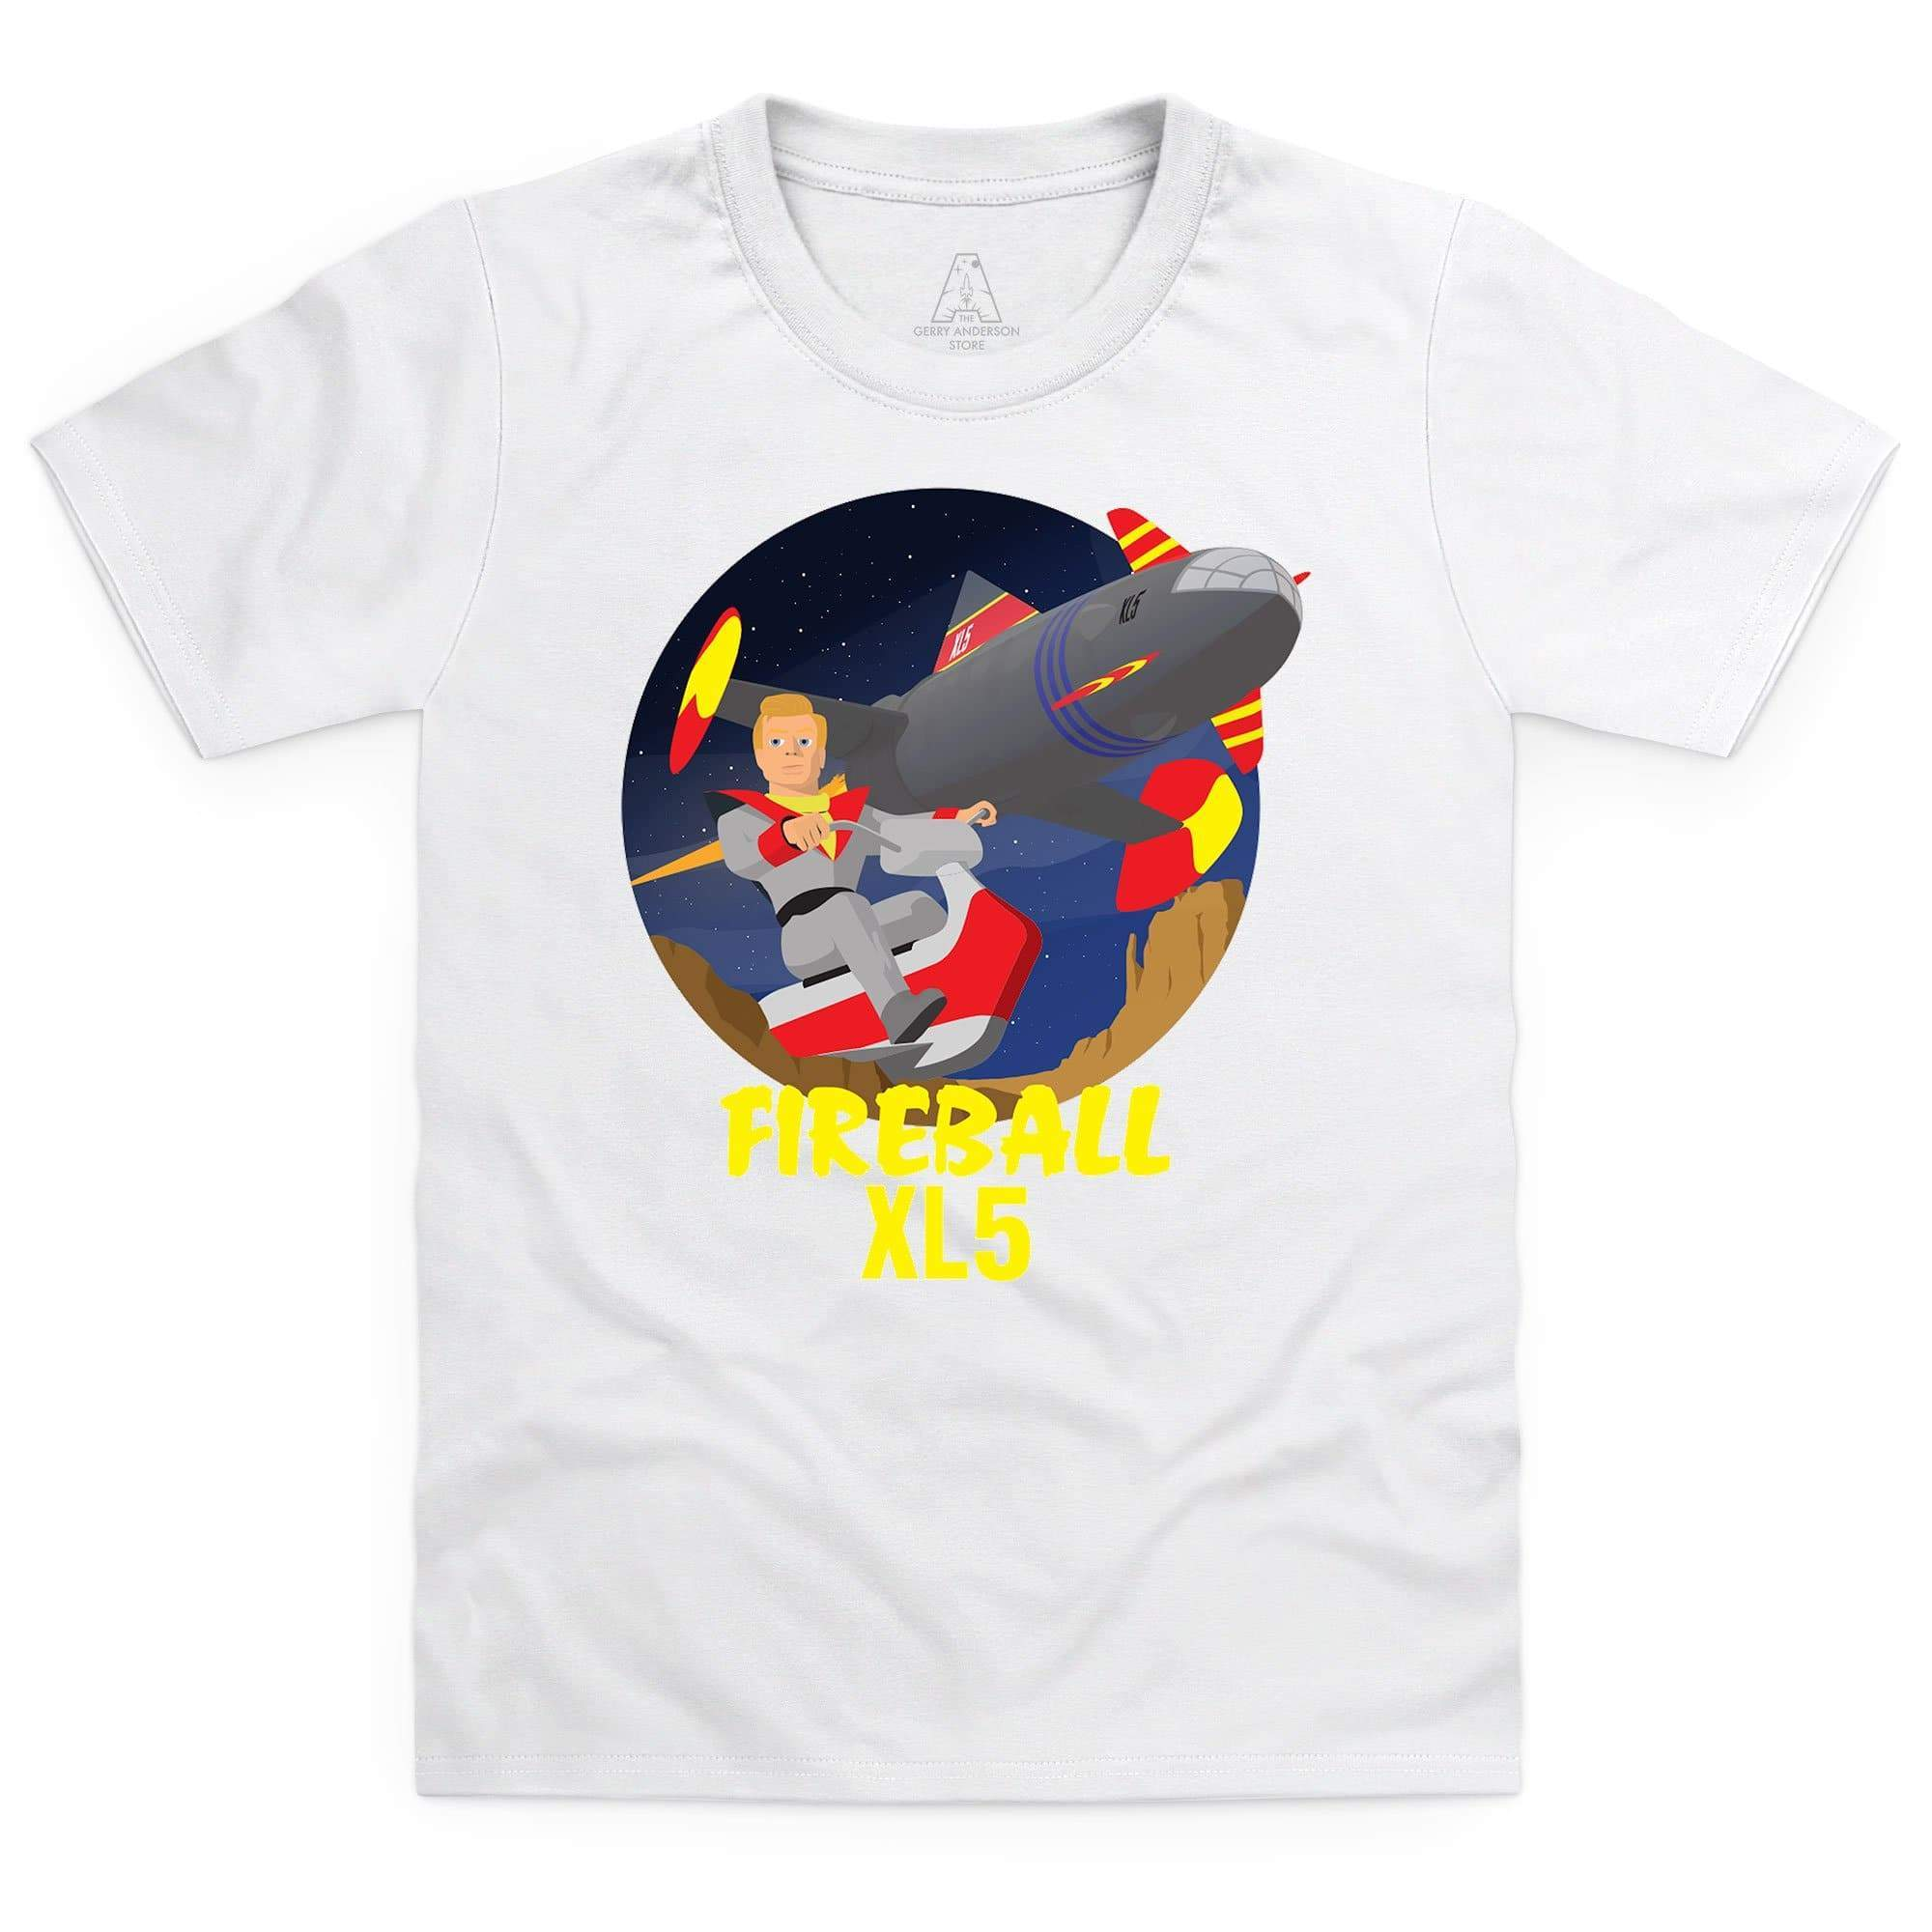 Fireball XL5 Kid's White T-Shirt [Official & Exclusive] - The Gerry Anderson Store